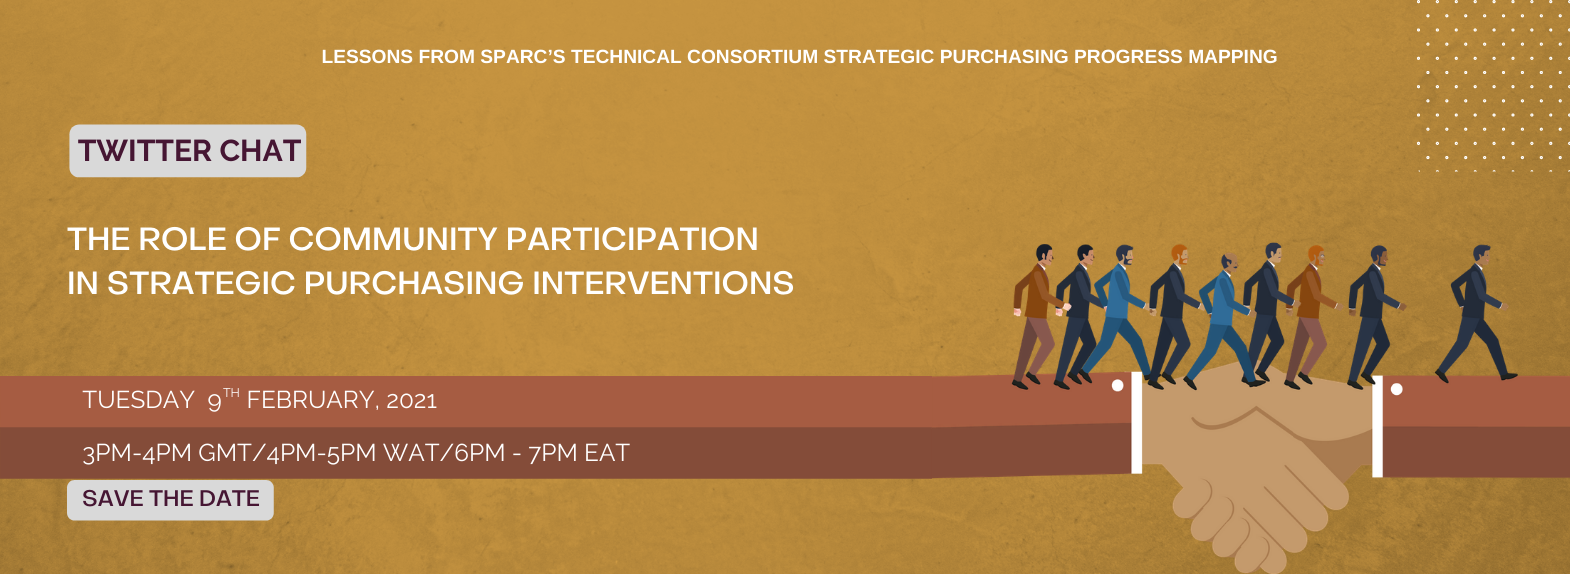 The Role of Community Participation in Strategic Purchasing Interventions